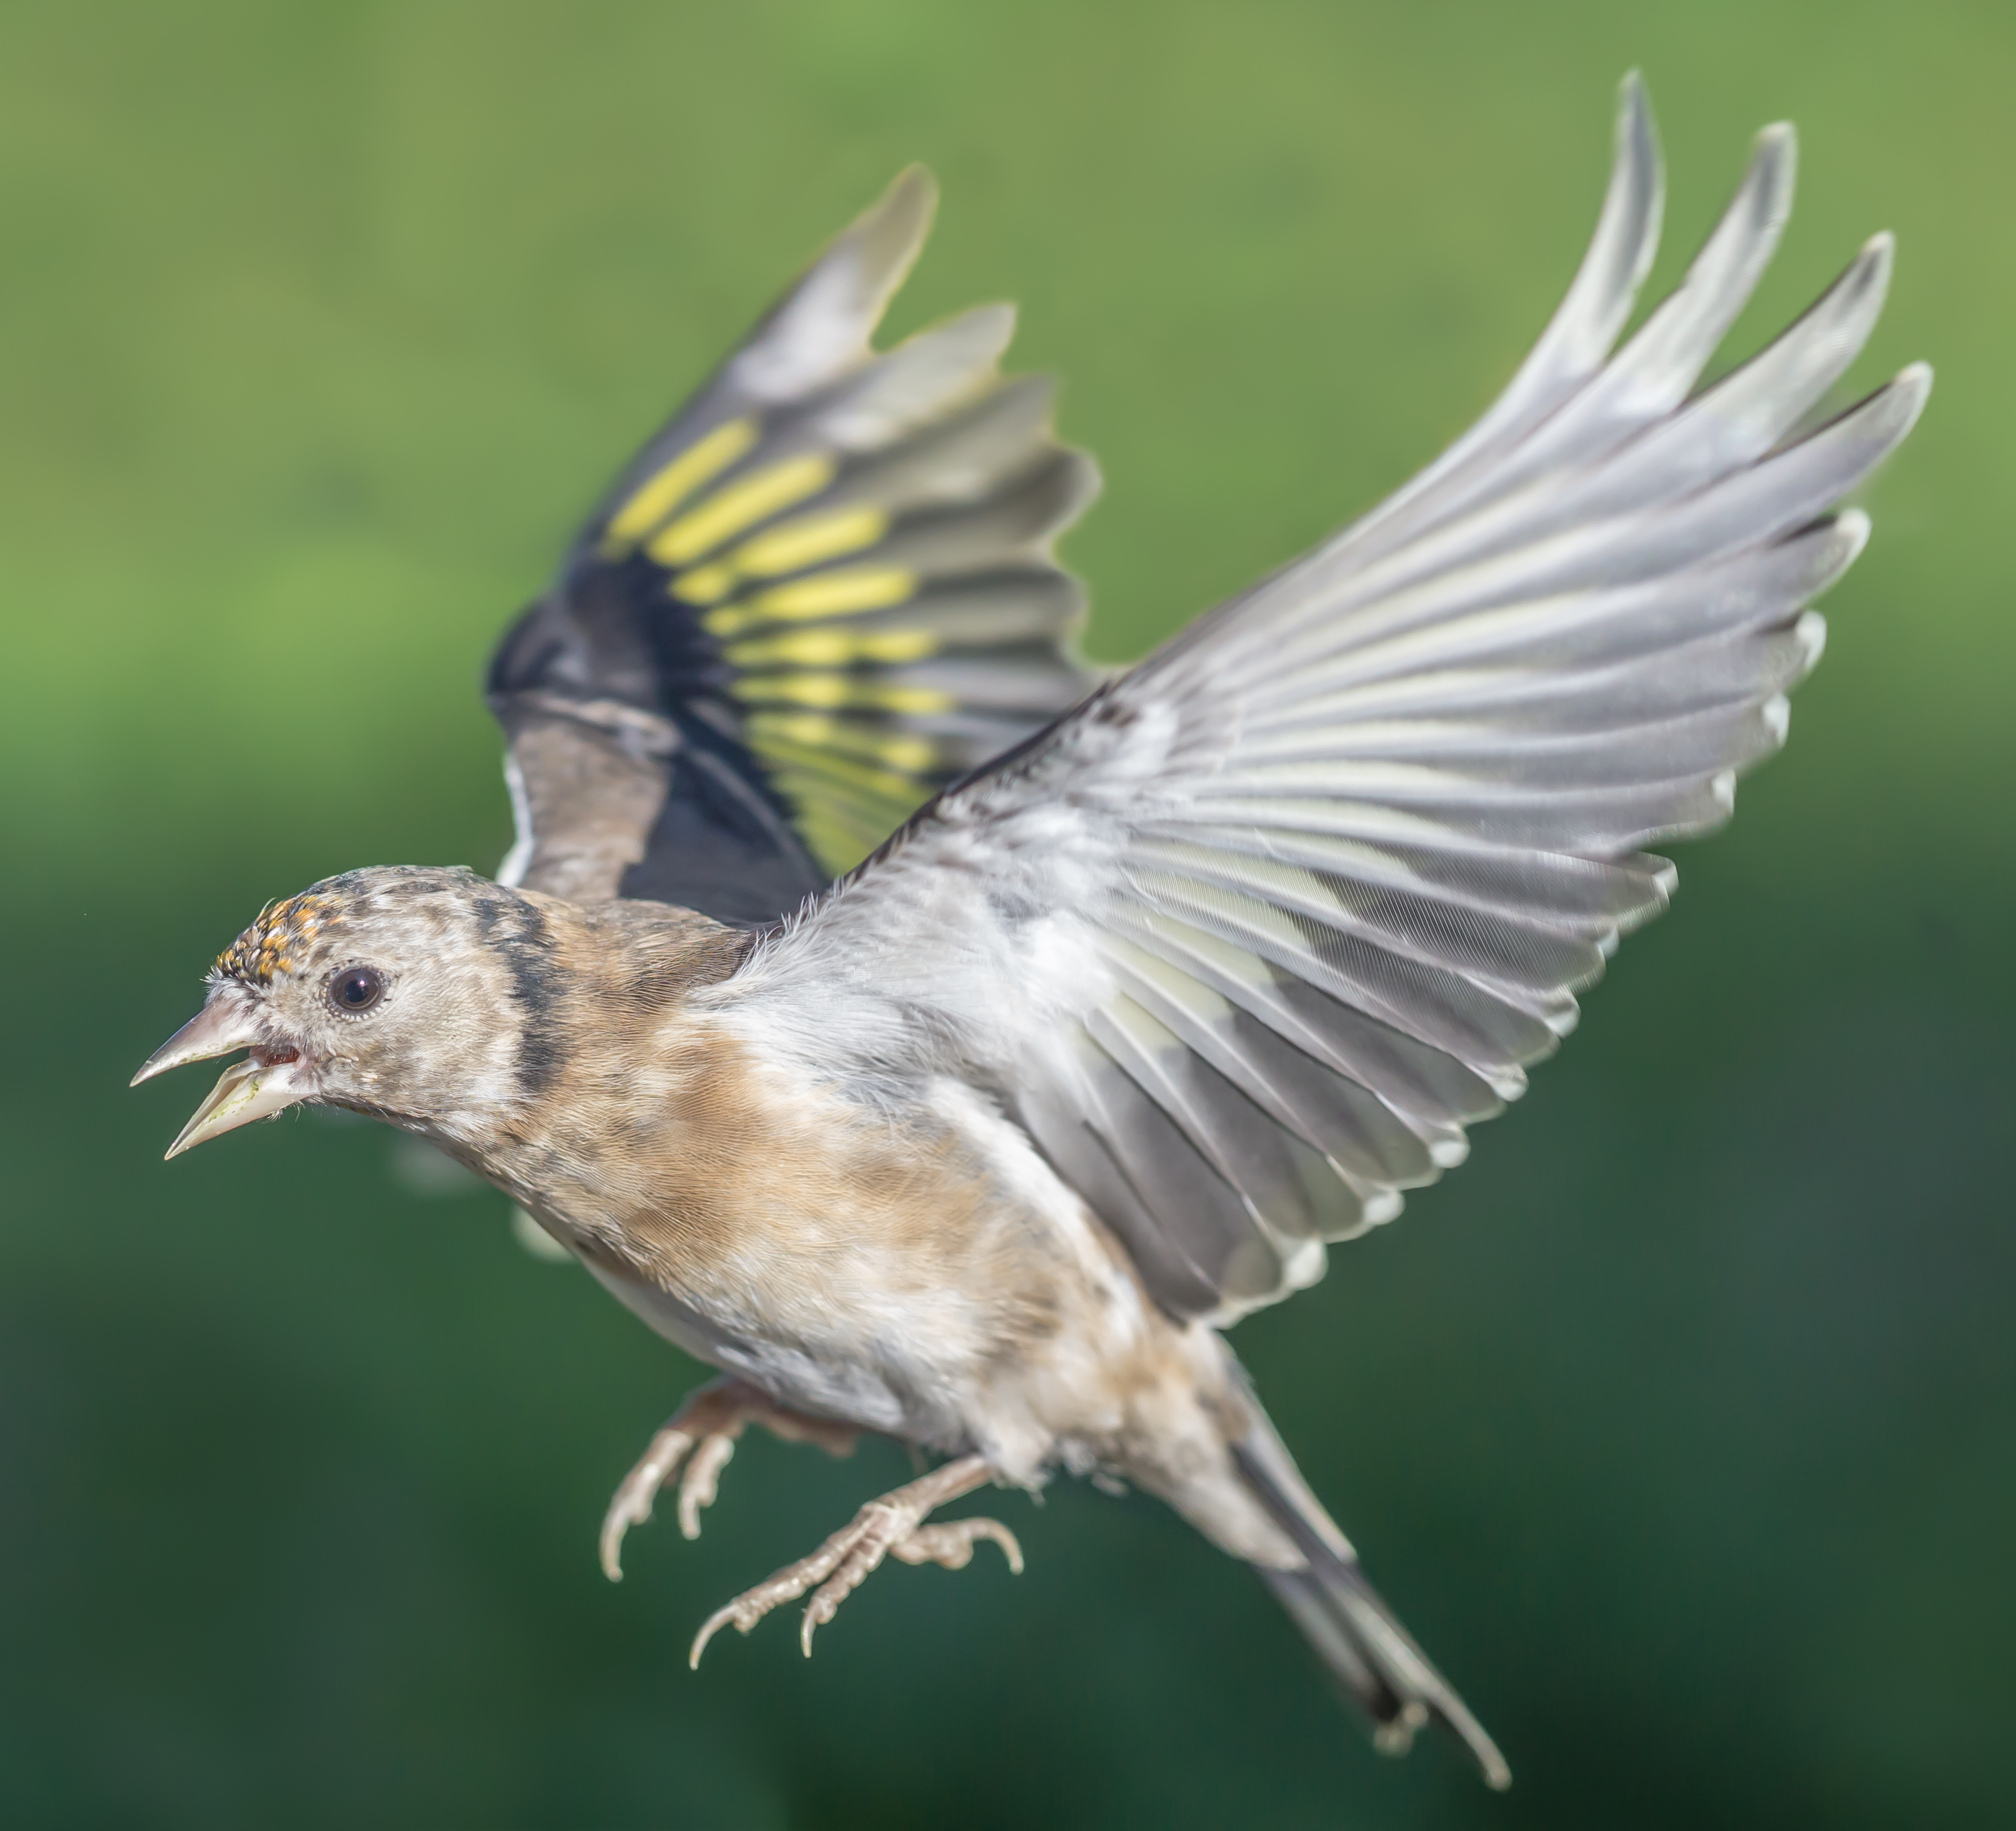 Goldfinch (juvenille) in flight